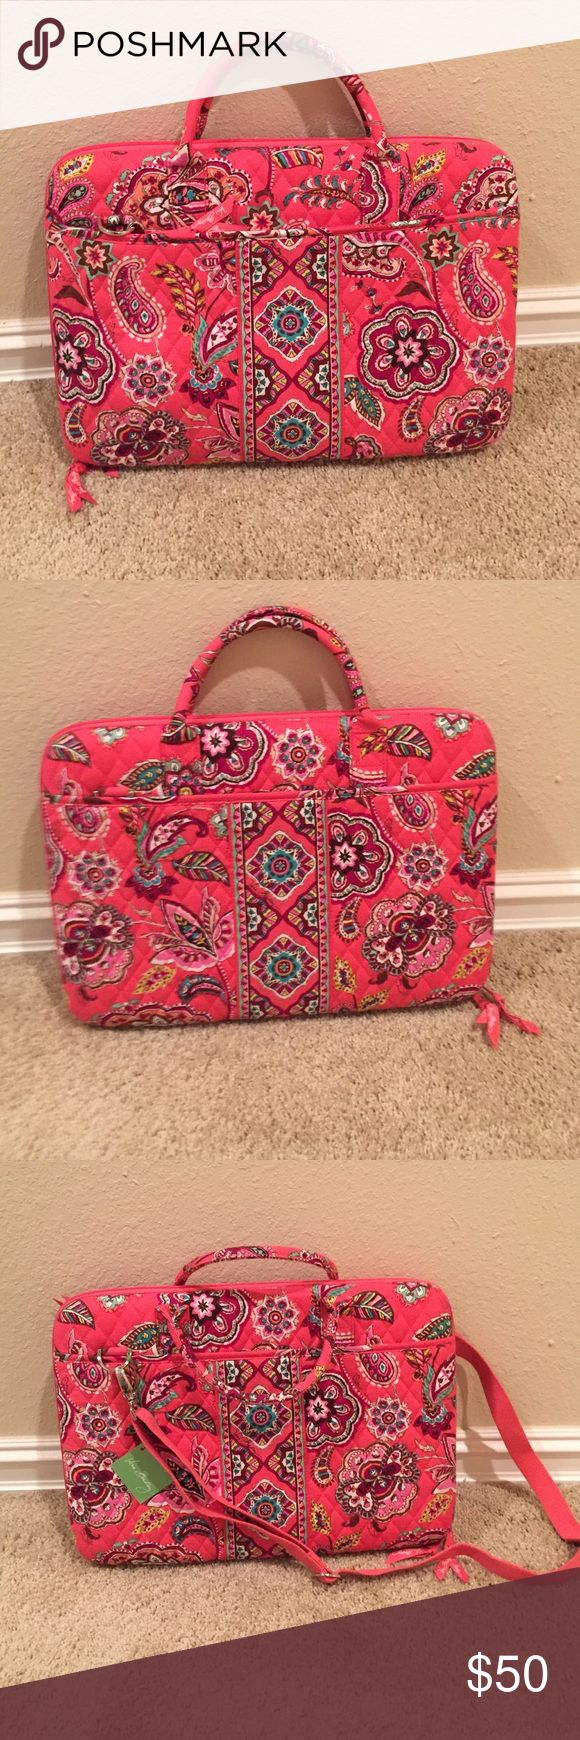 """Vera Bradley Laptop Portfolio """"Call me Coral"""" laptop portfolio case. Comes with strap, has two handles, and in excellent condition. NWT! Vera Bradley Bags Laptop Bags"""